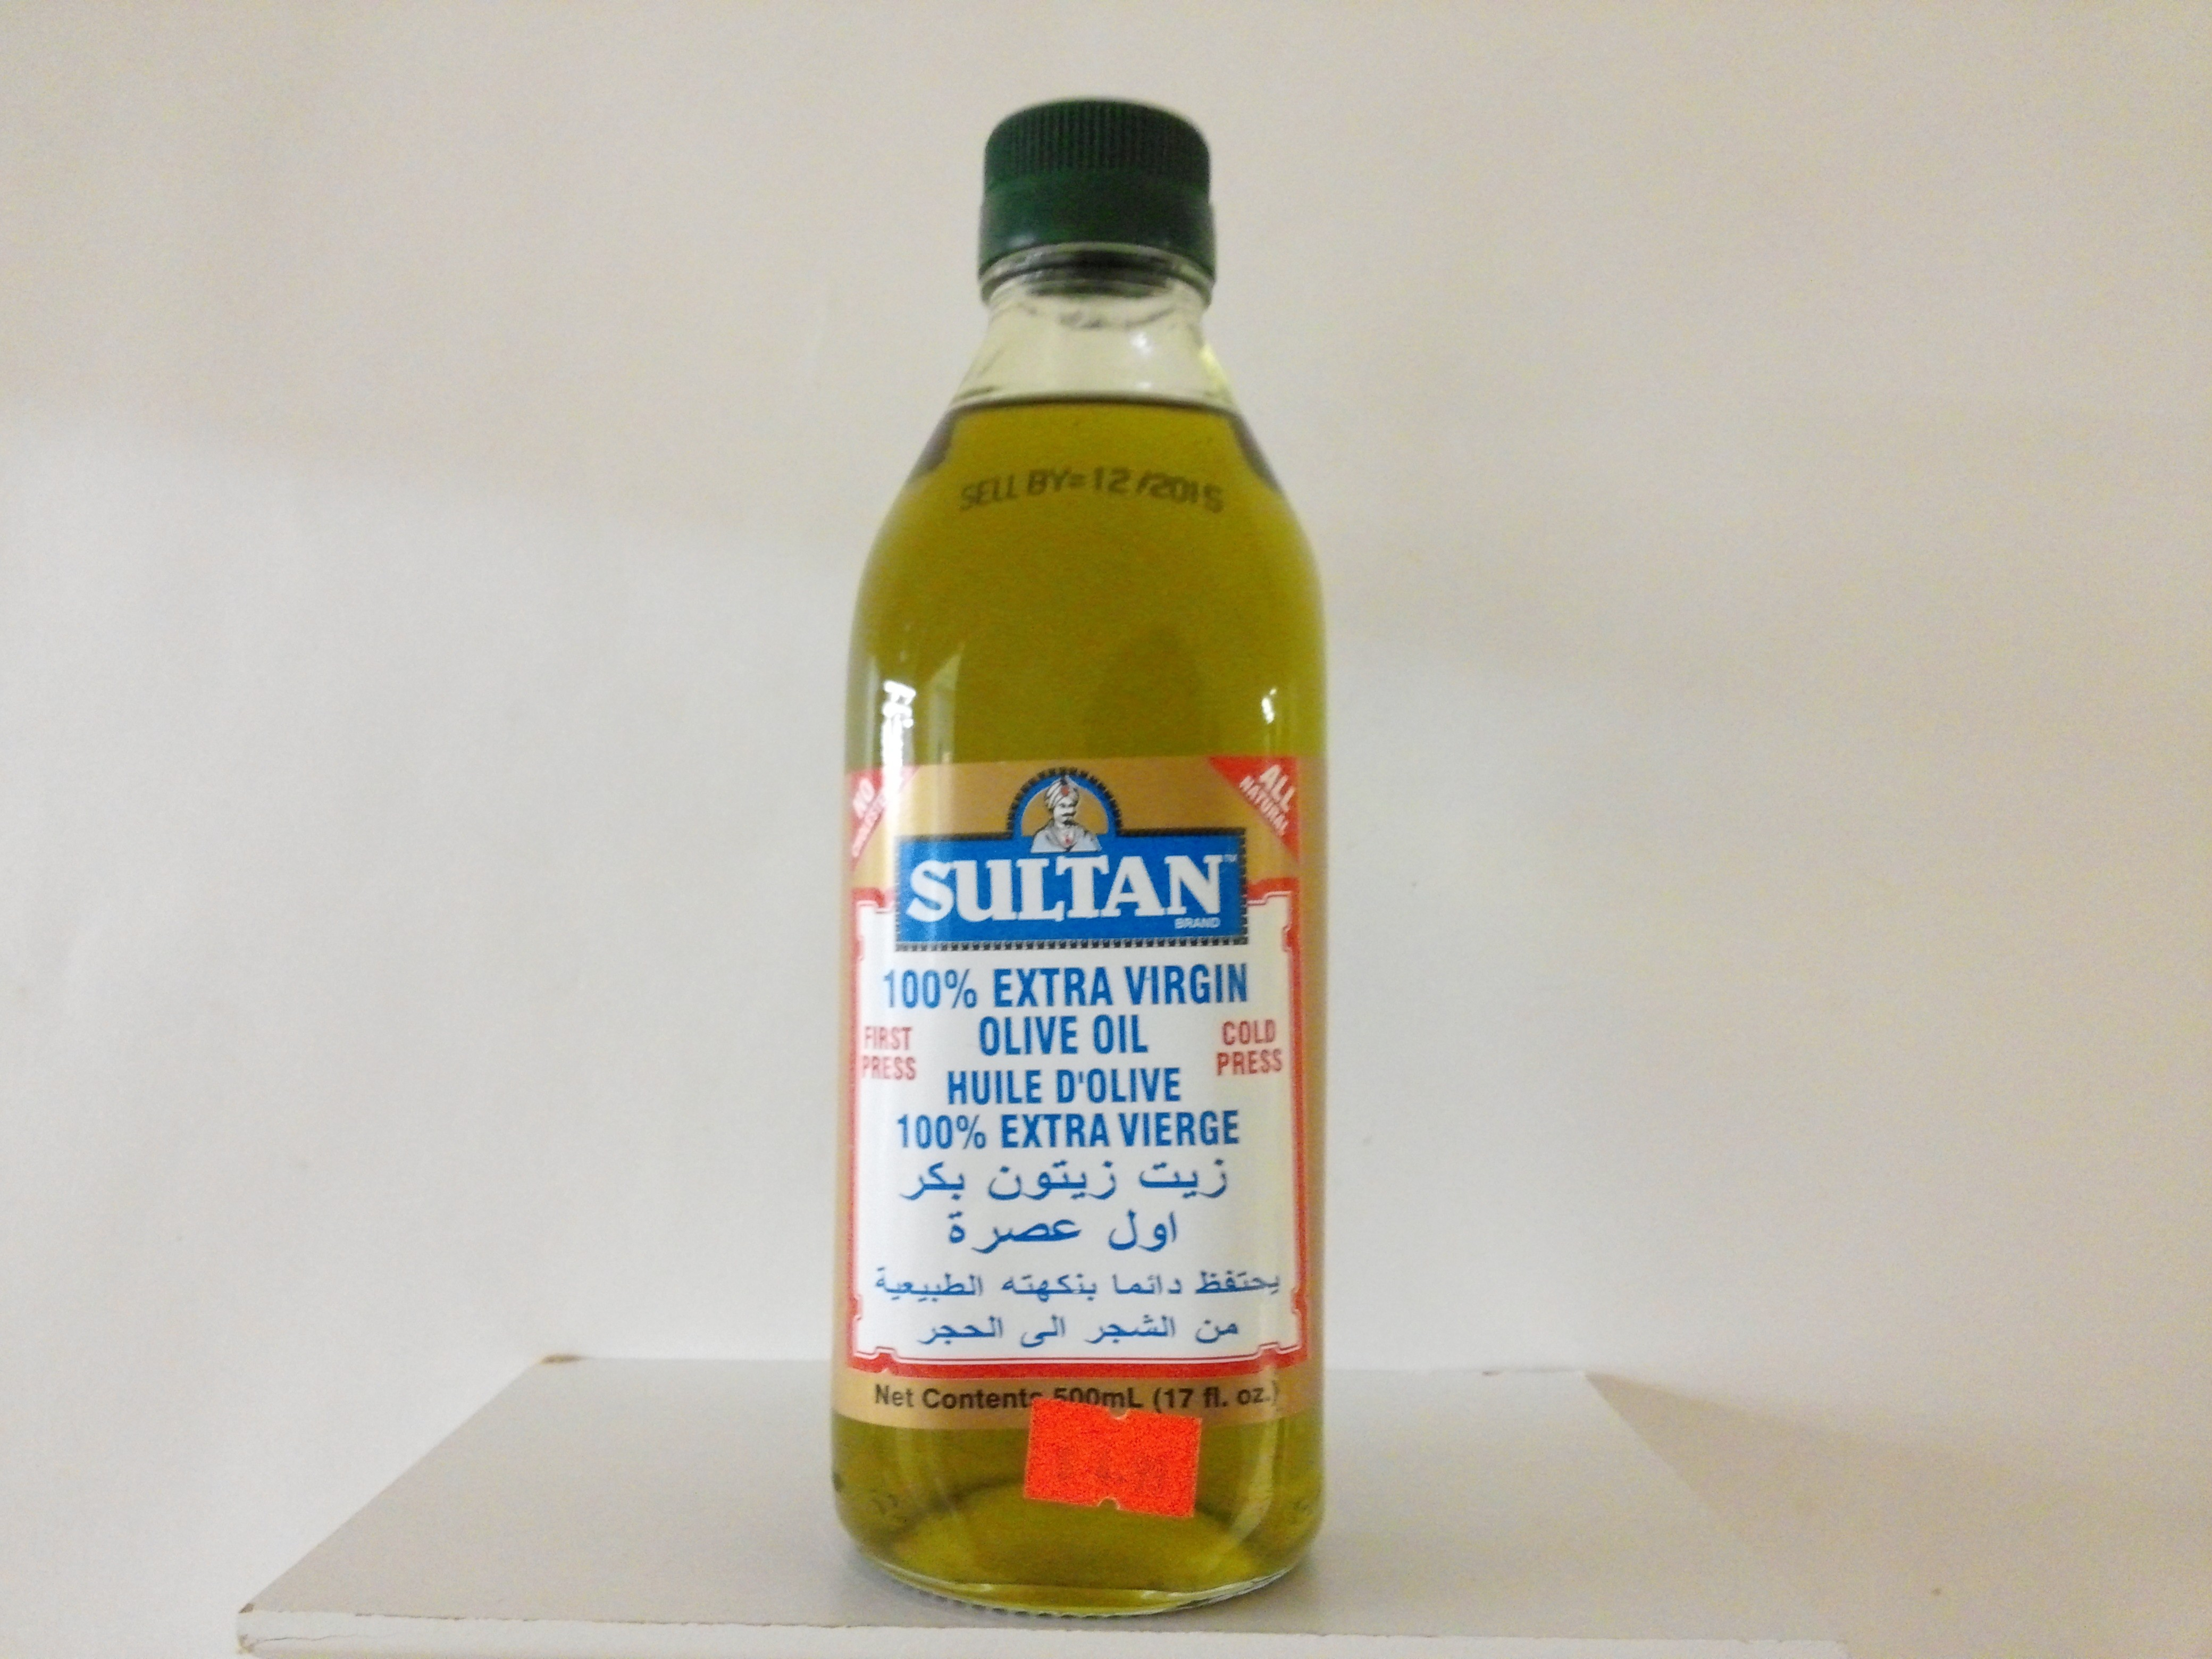 Sultan 100% Extra Virgin Olive Oil 17 oz